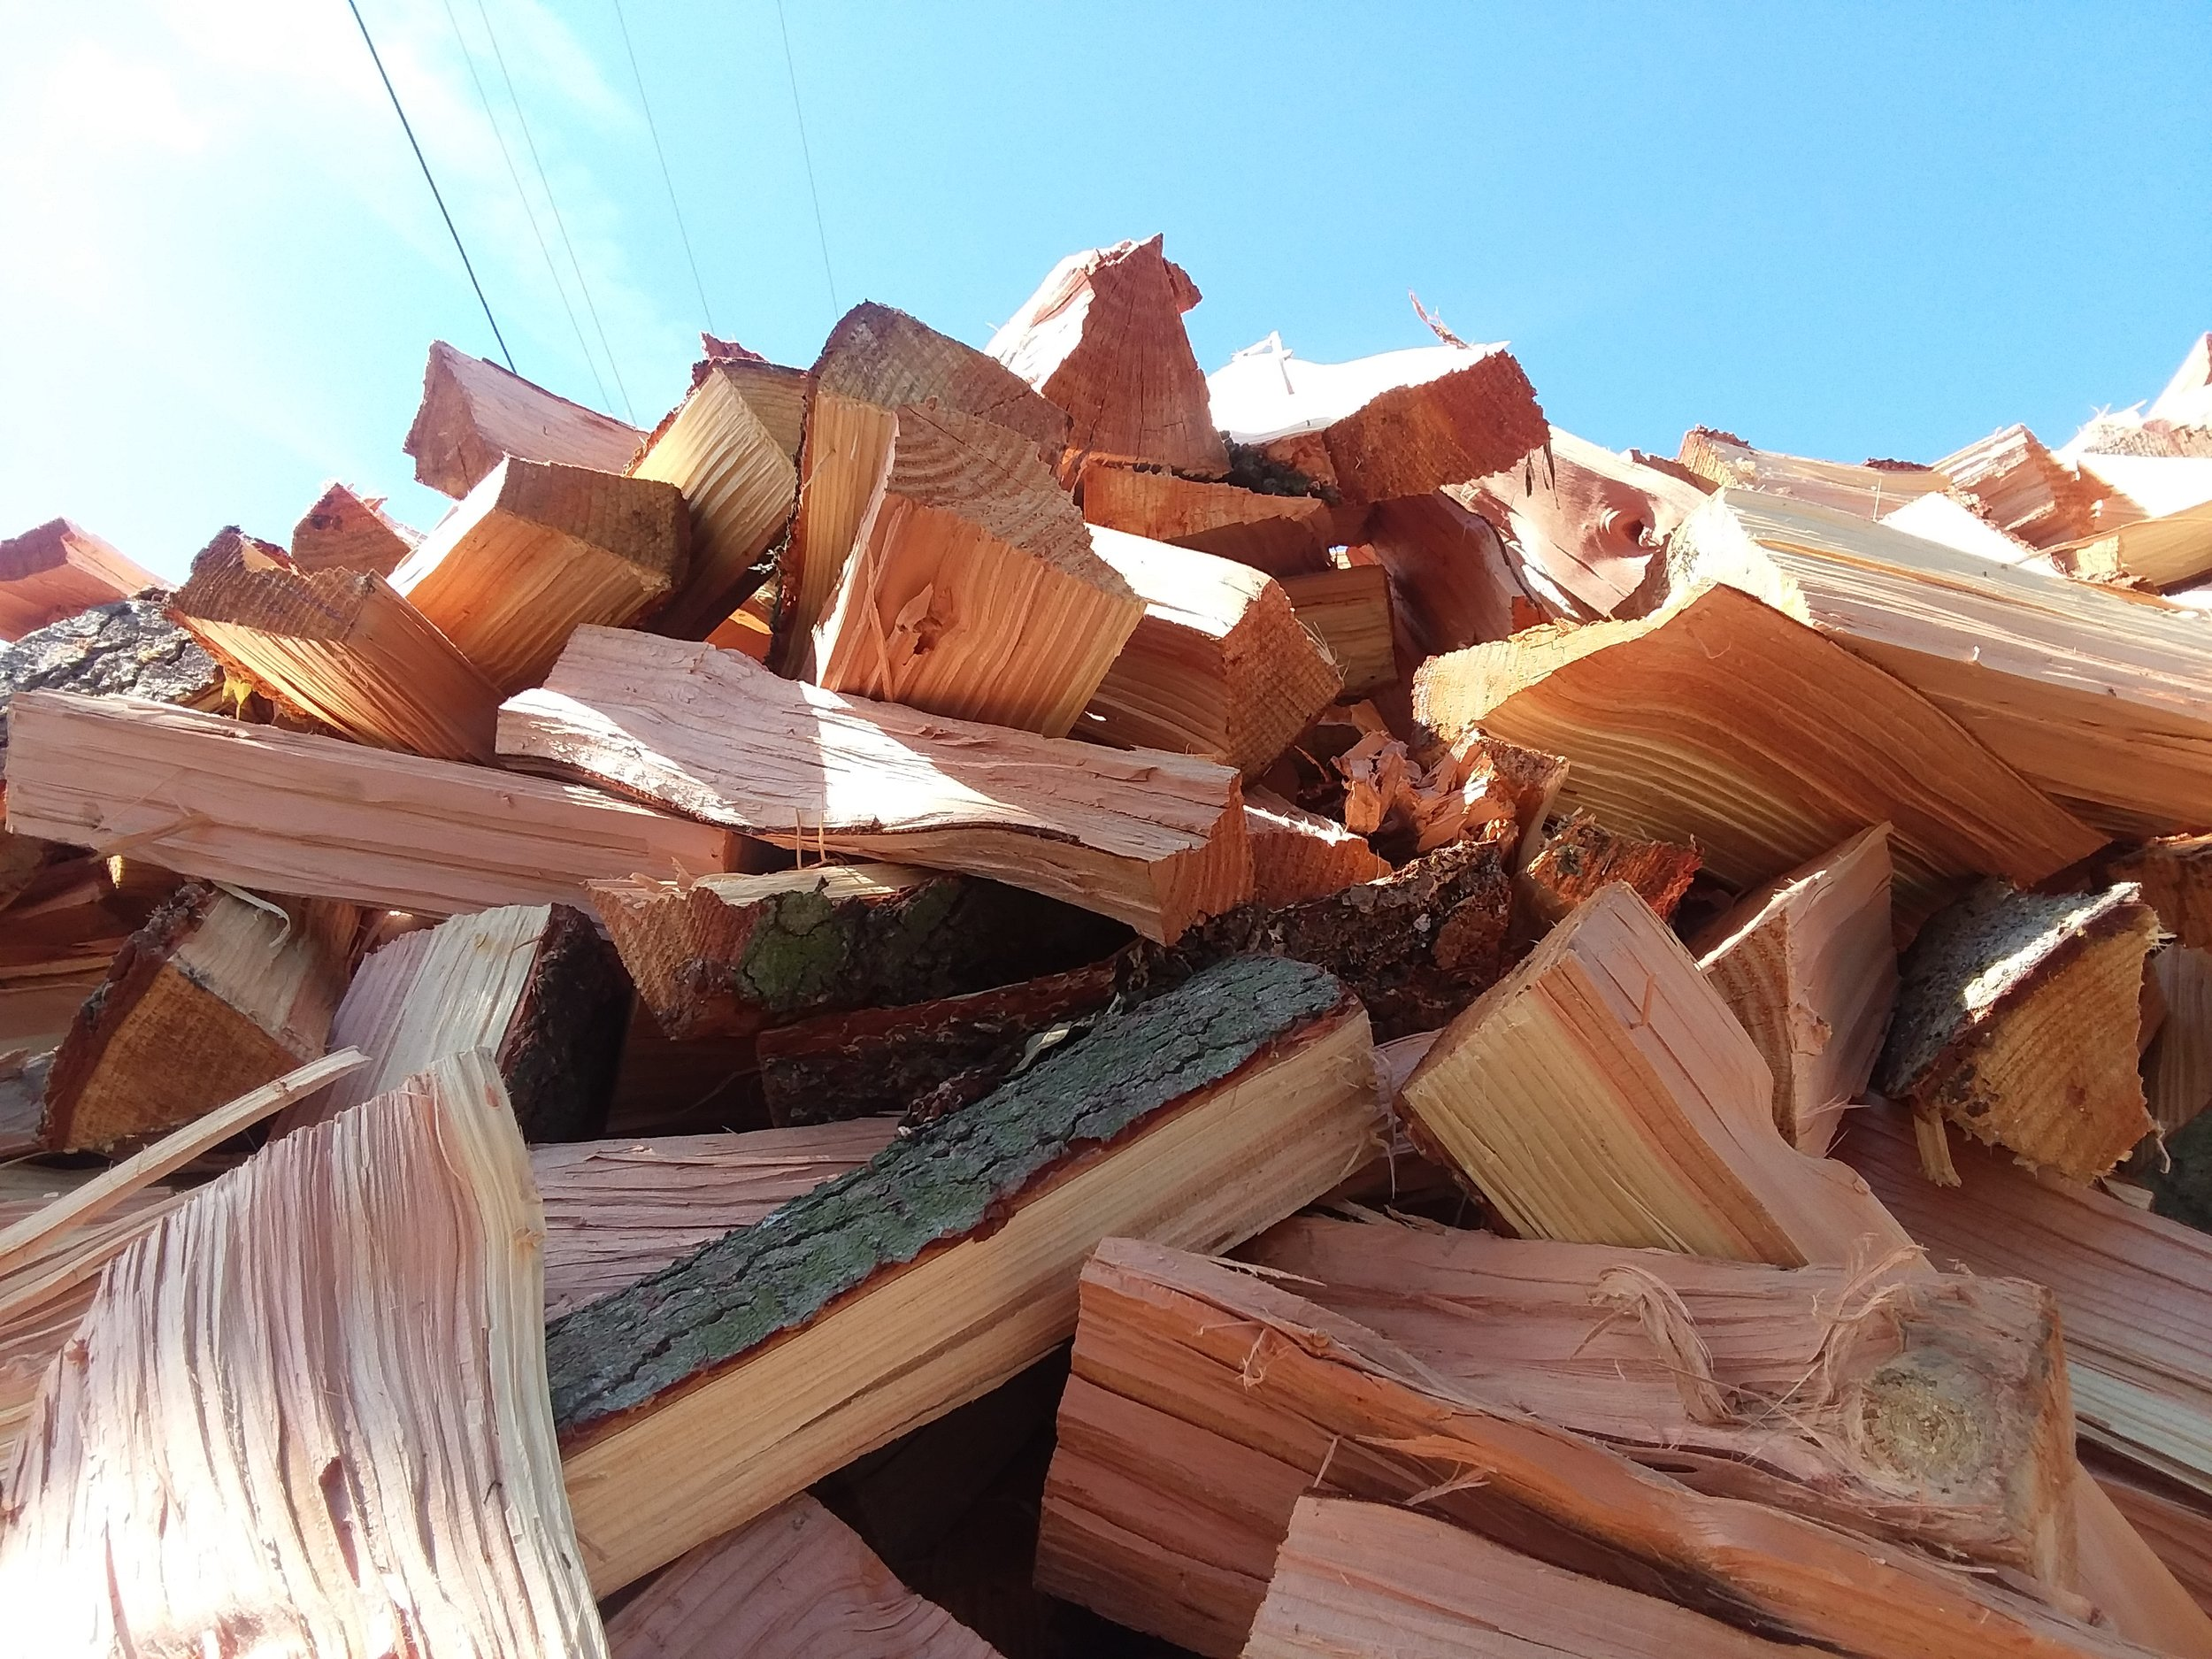 Need Firewood? - We have volumes from single Campfire size bundles to multiple cords delivered and stacked.